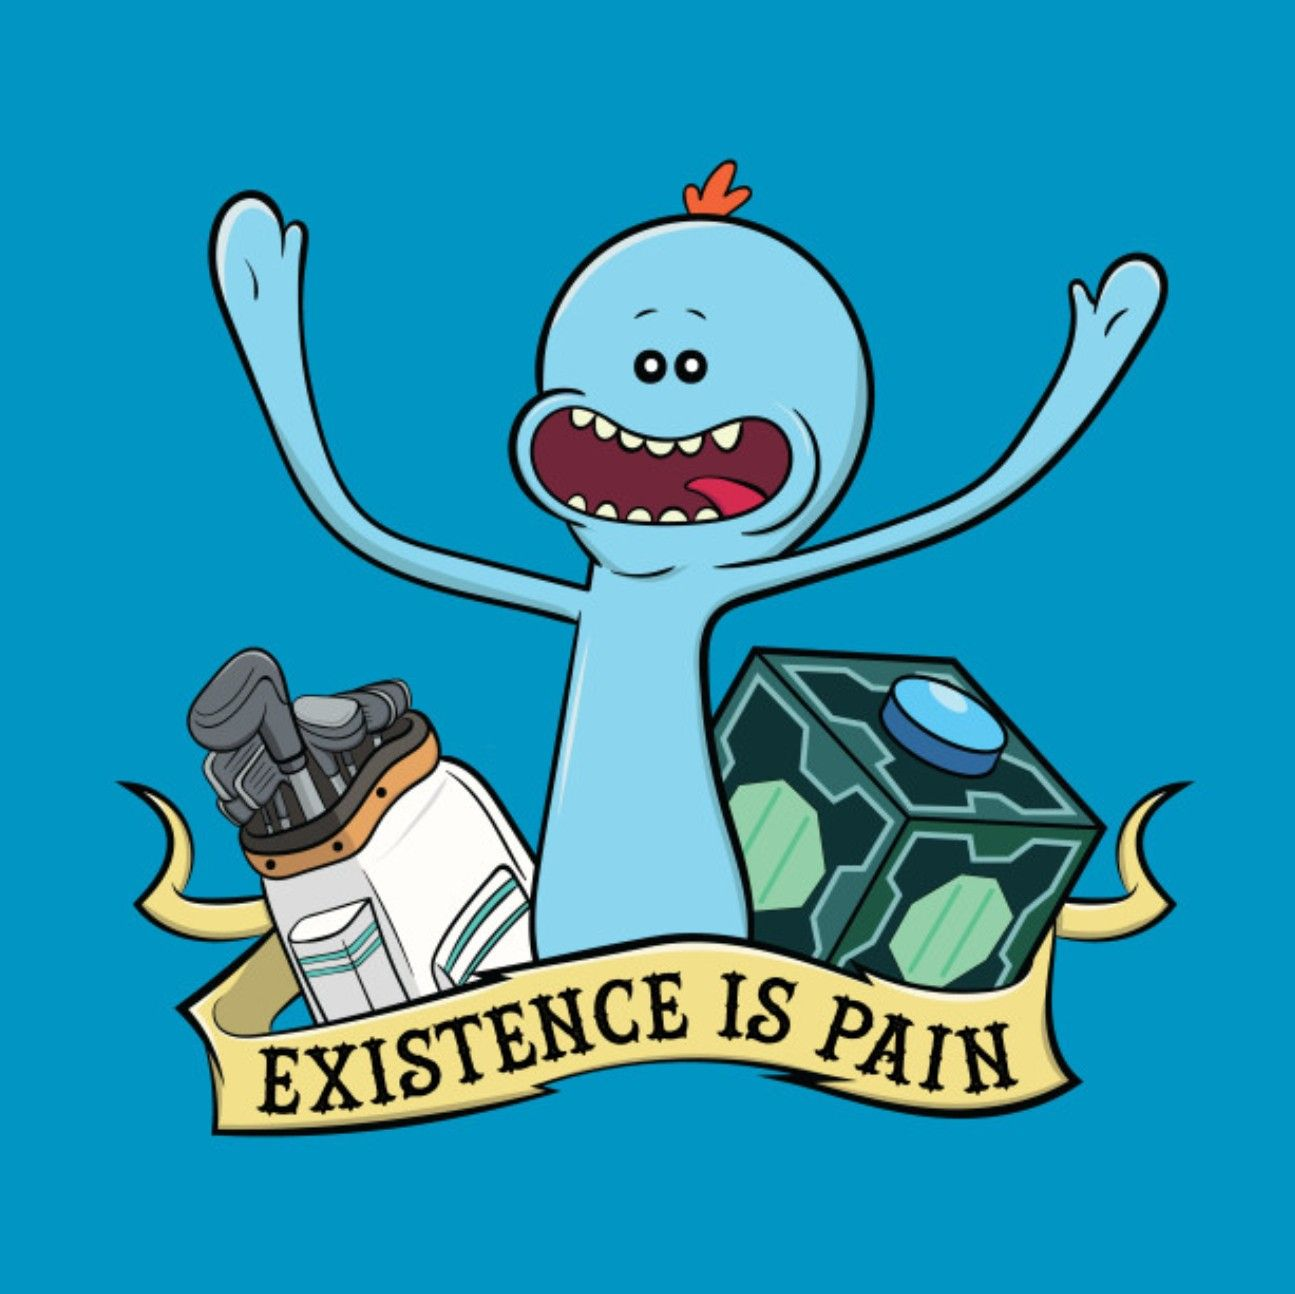 Mr Meeseeks Aesthetic Desktop Wallpapers Wallpaper Cave